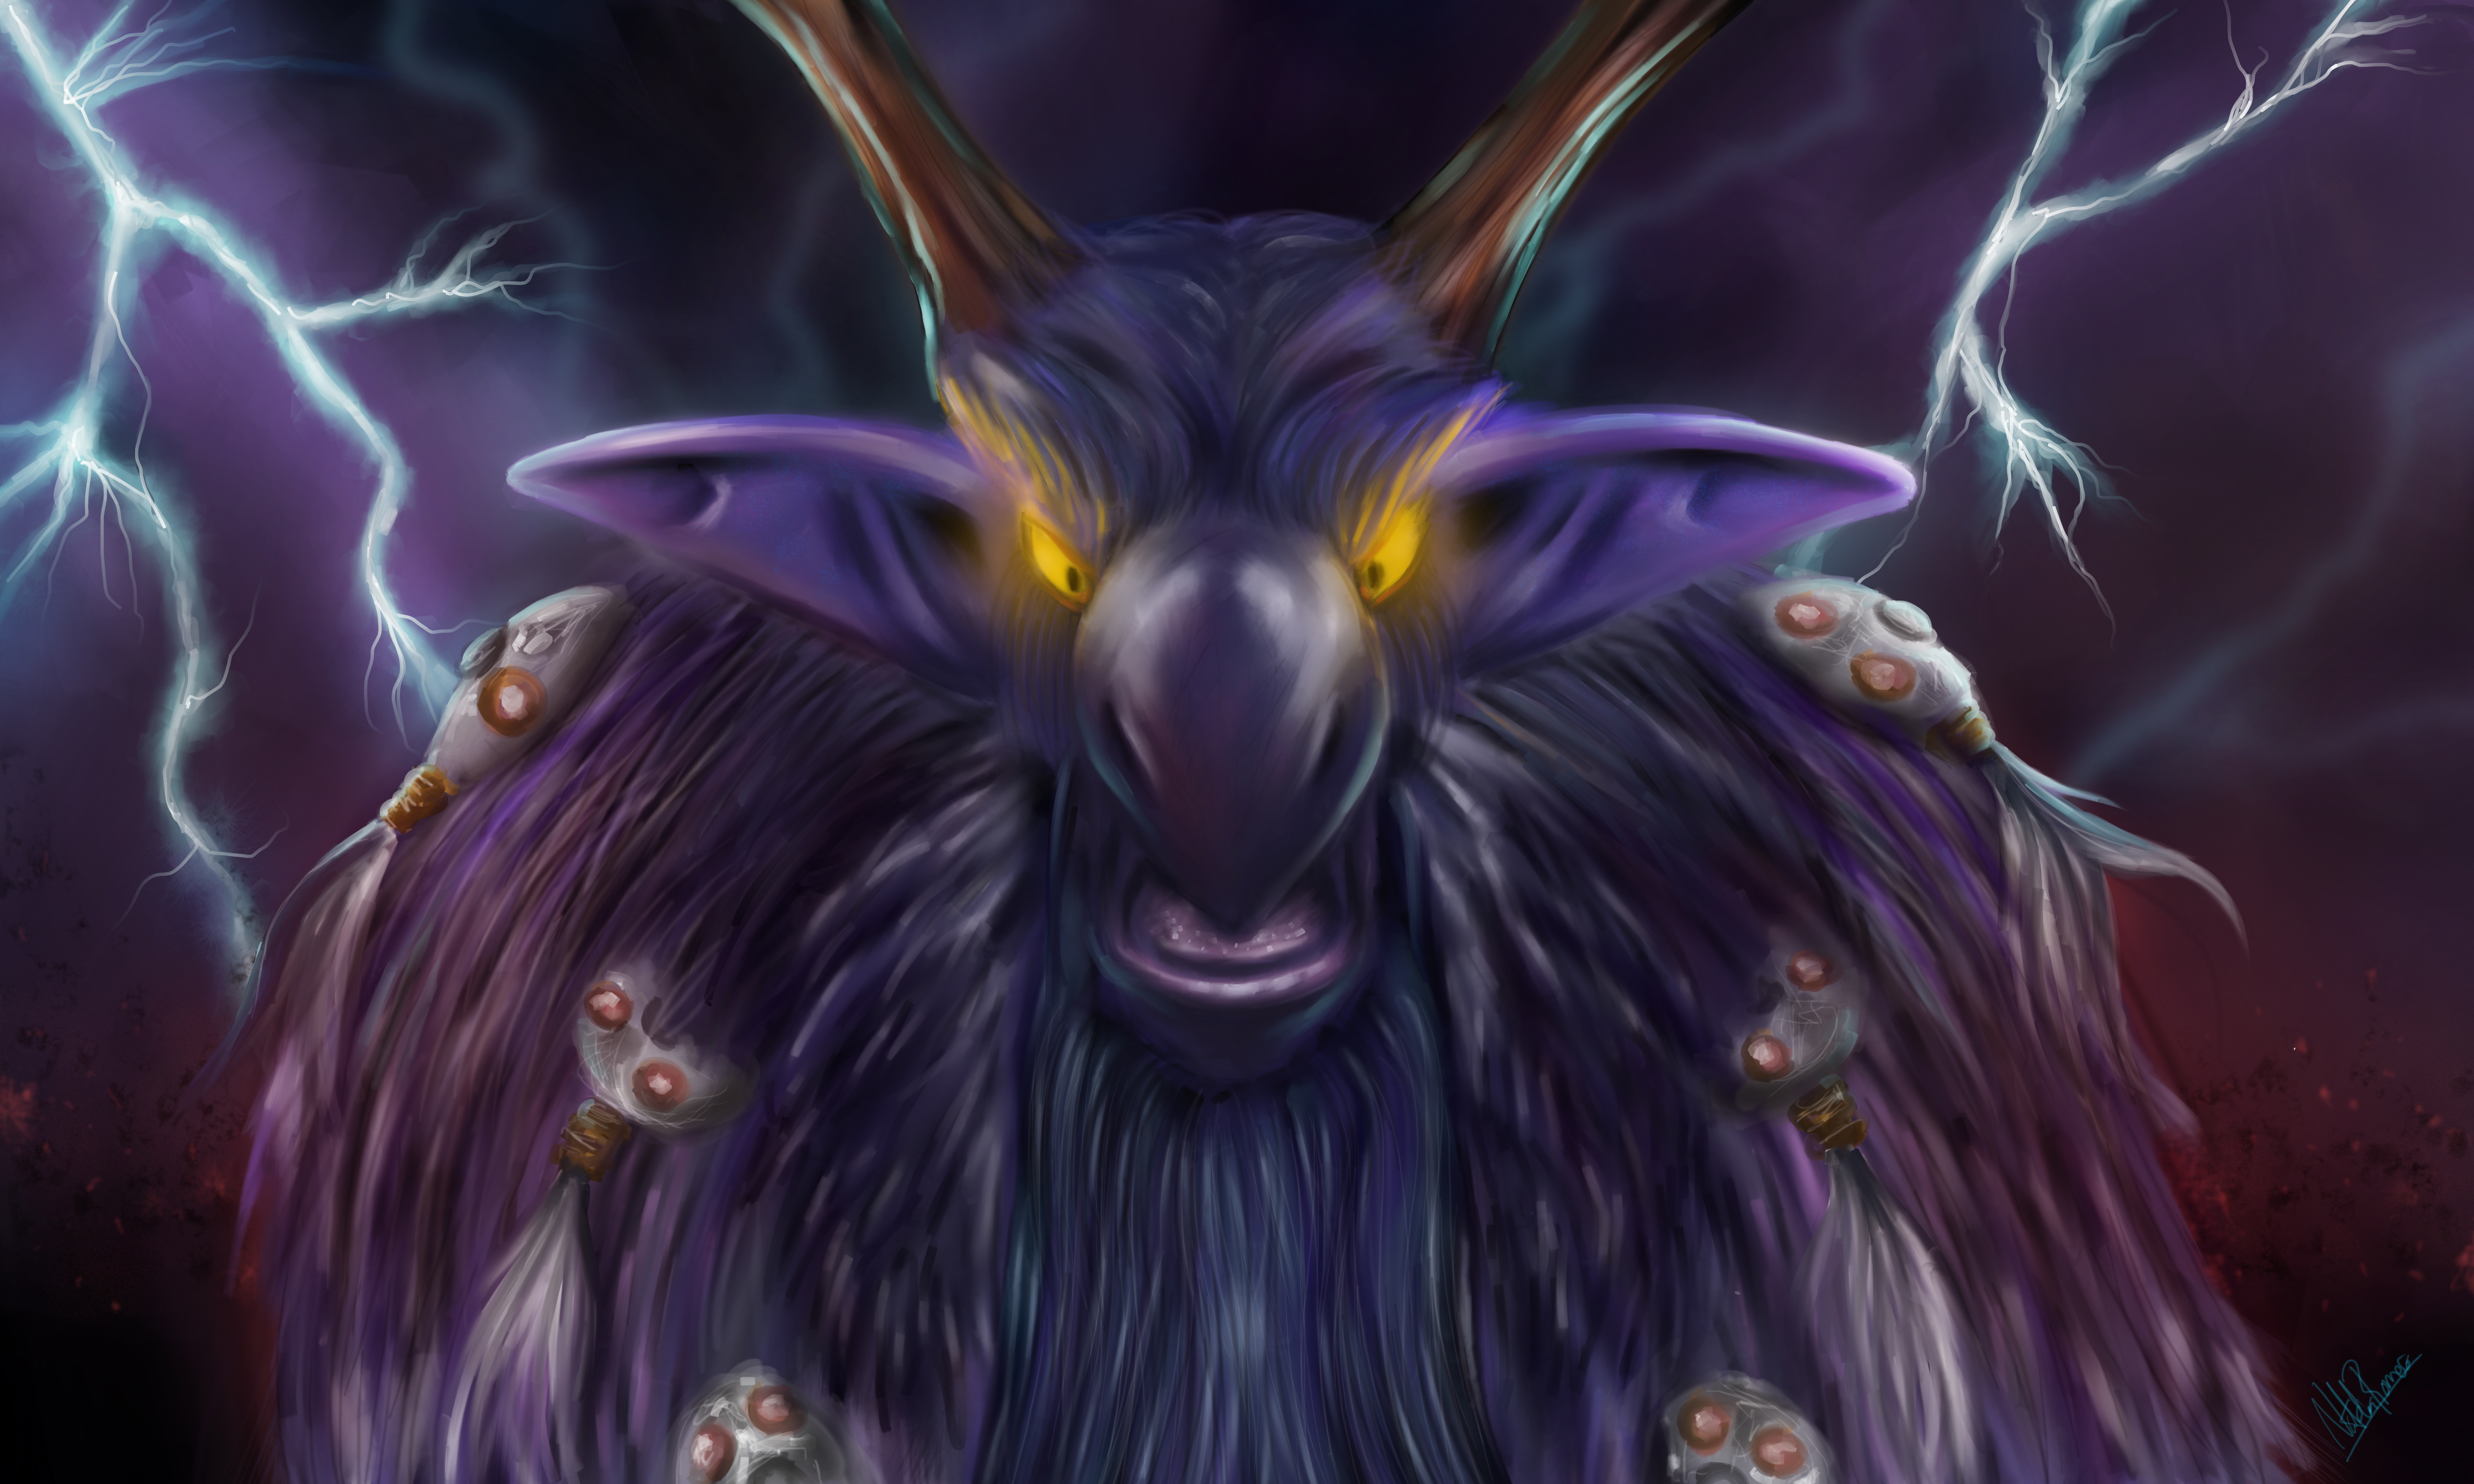 MOONKIN IN THE EYE OF THE STORM by inoxdesign